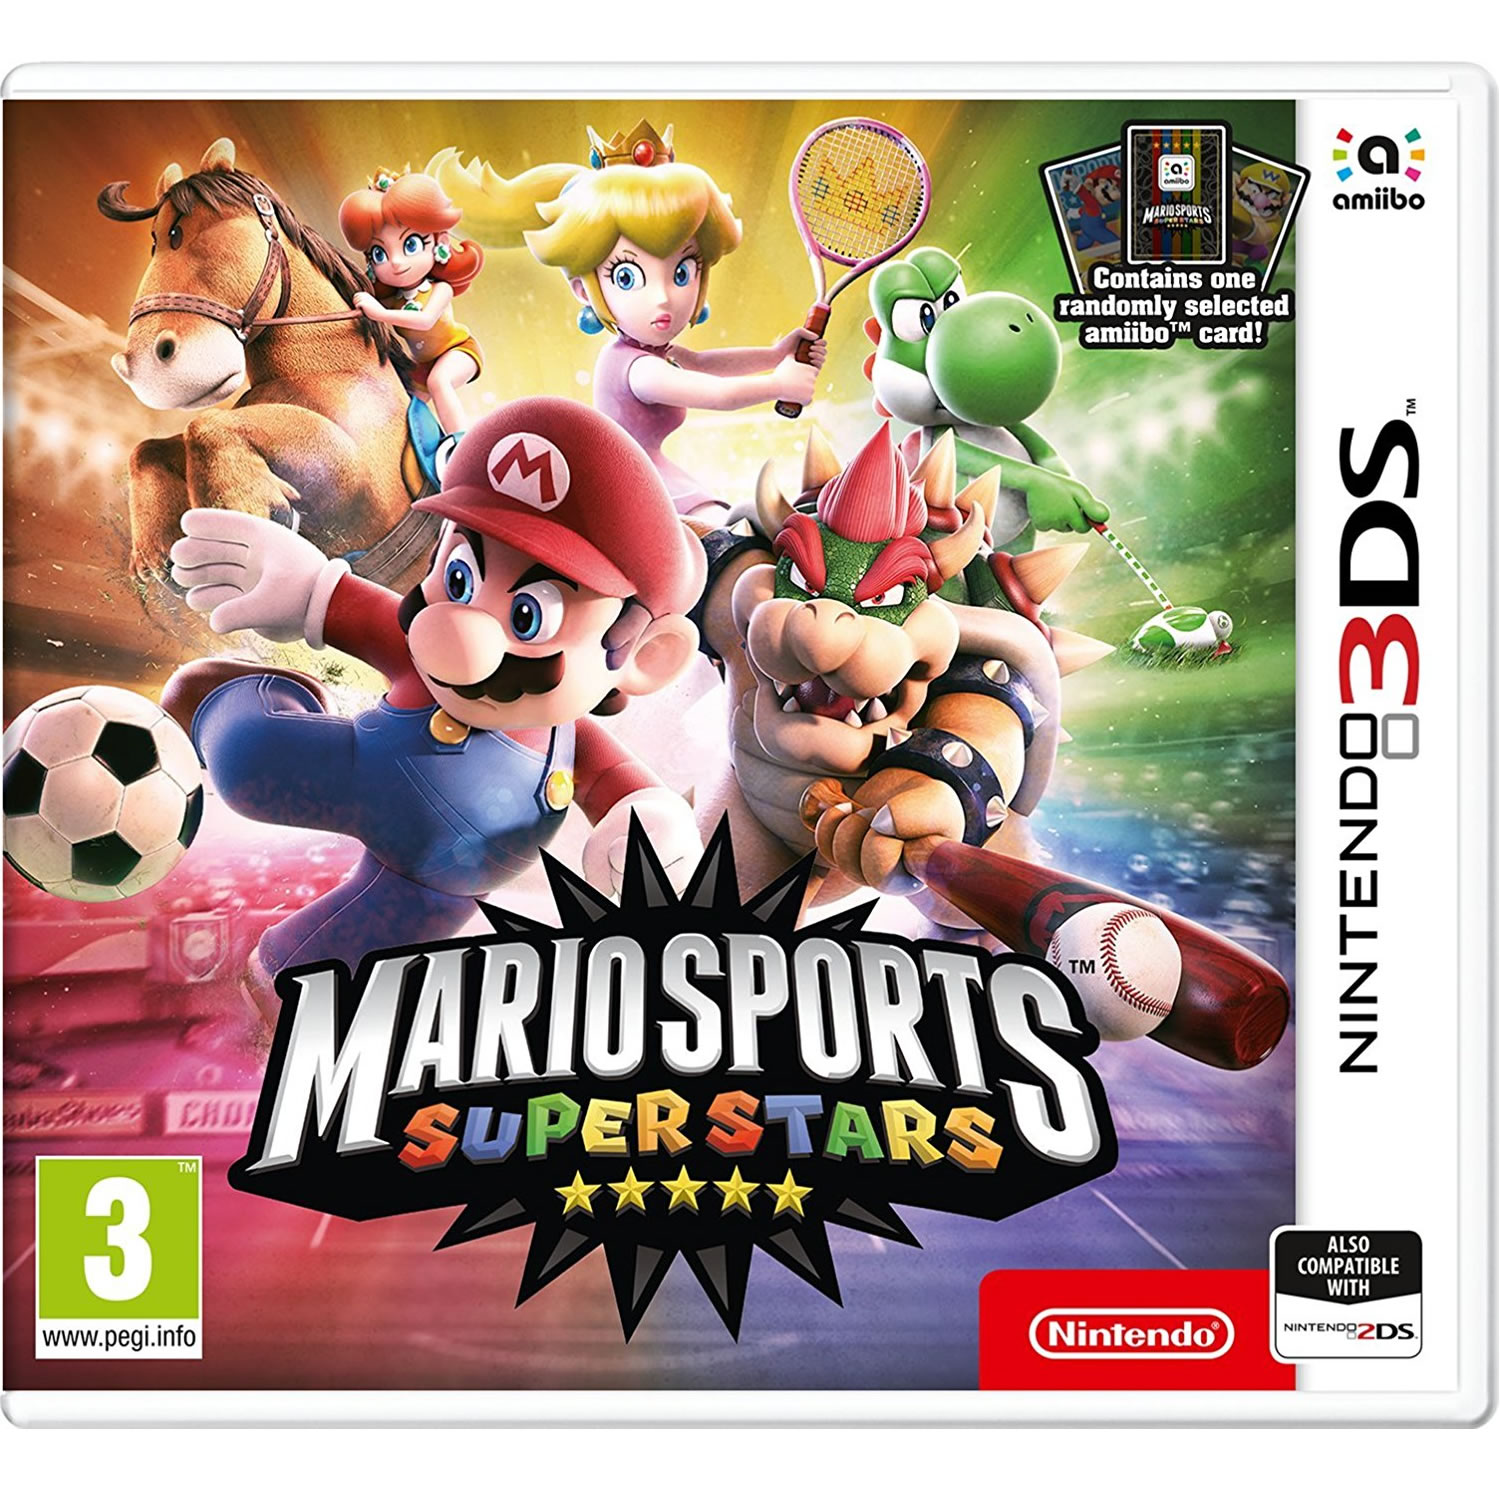 MARIO SPORTS SUPERSTARS + amiibo Card (3DS, 2DS)